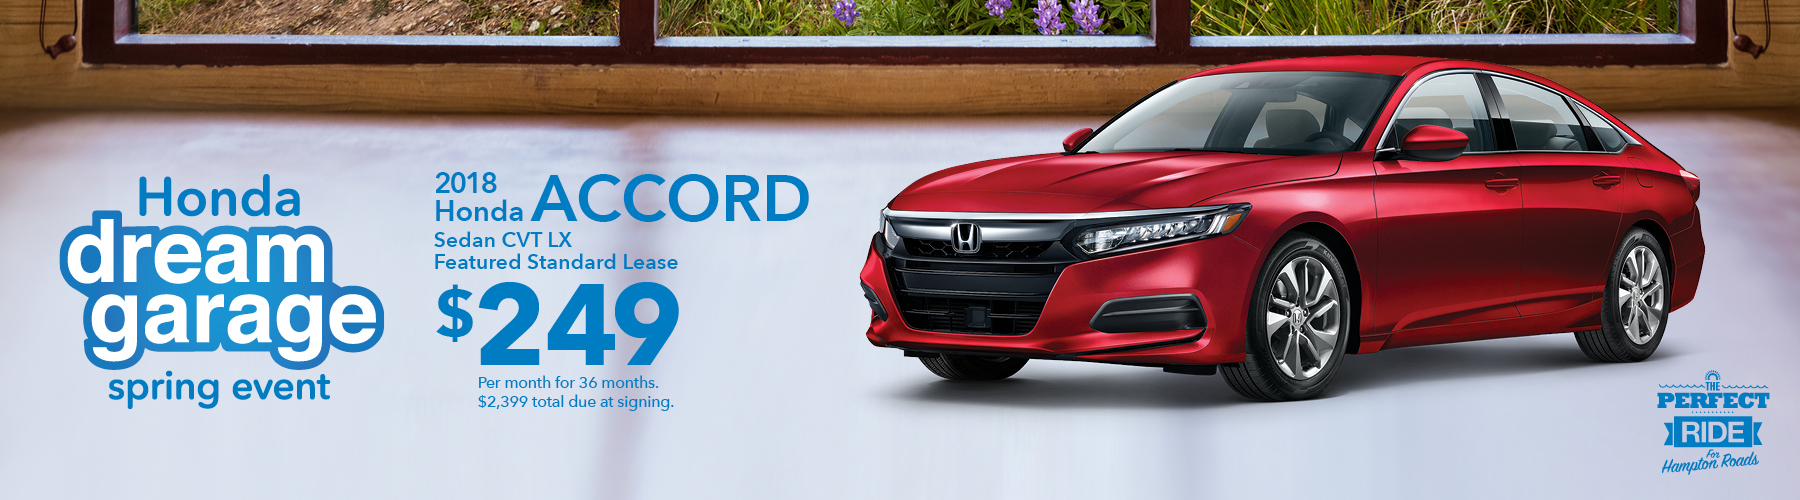 Hampton Roads Honda Dream Garage 2018 Accord Lease Offer